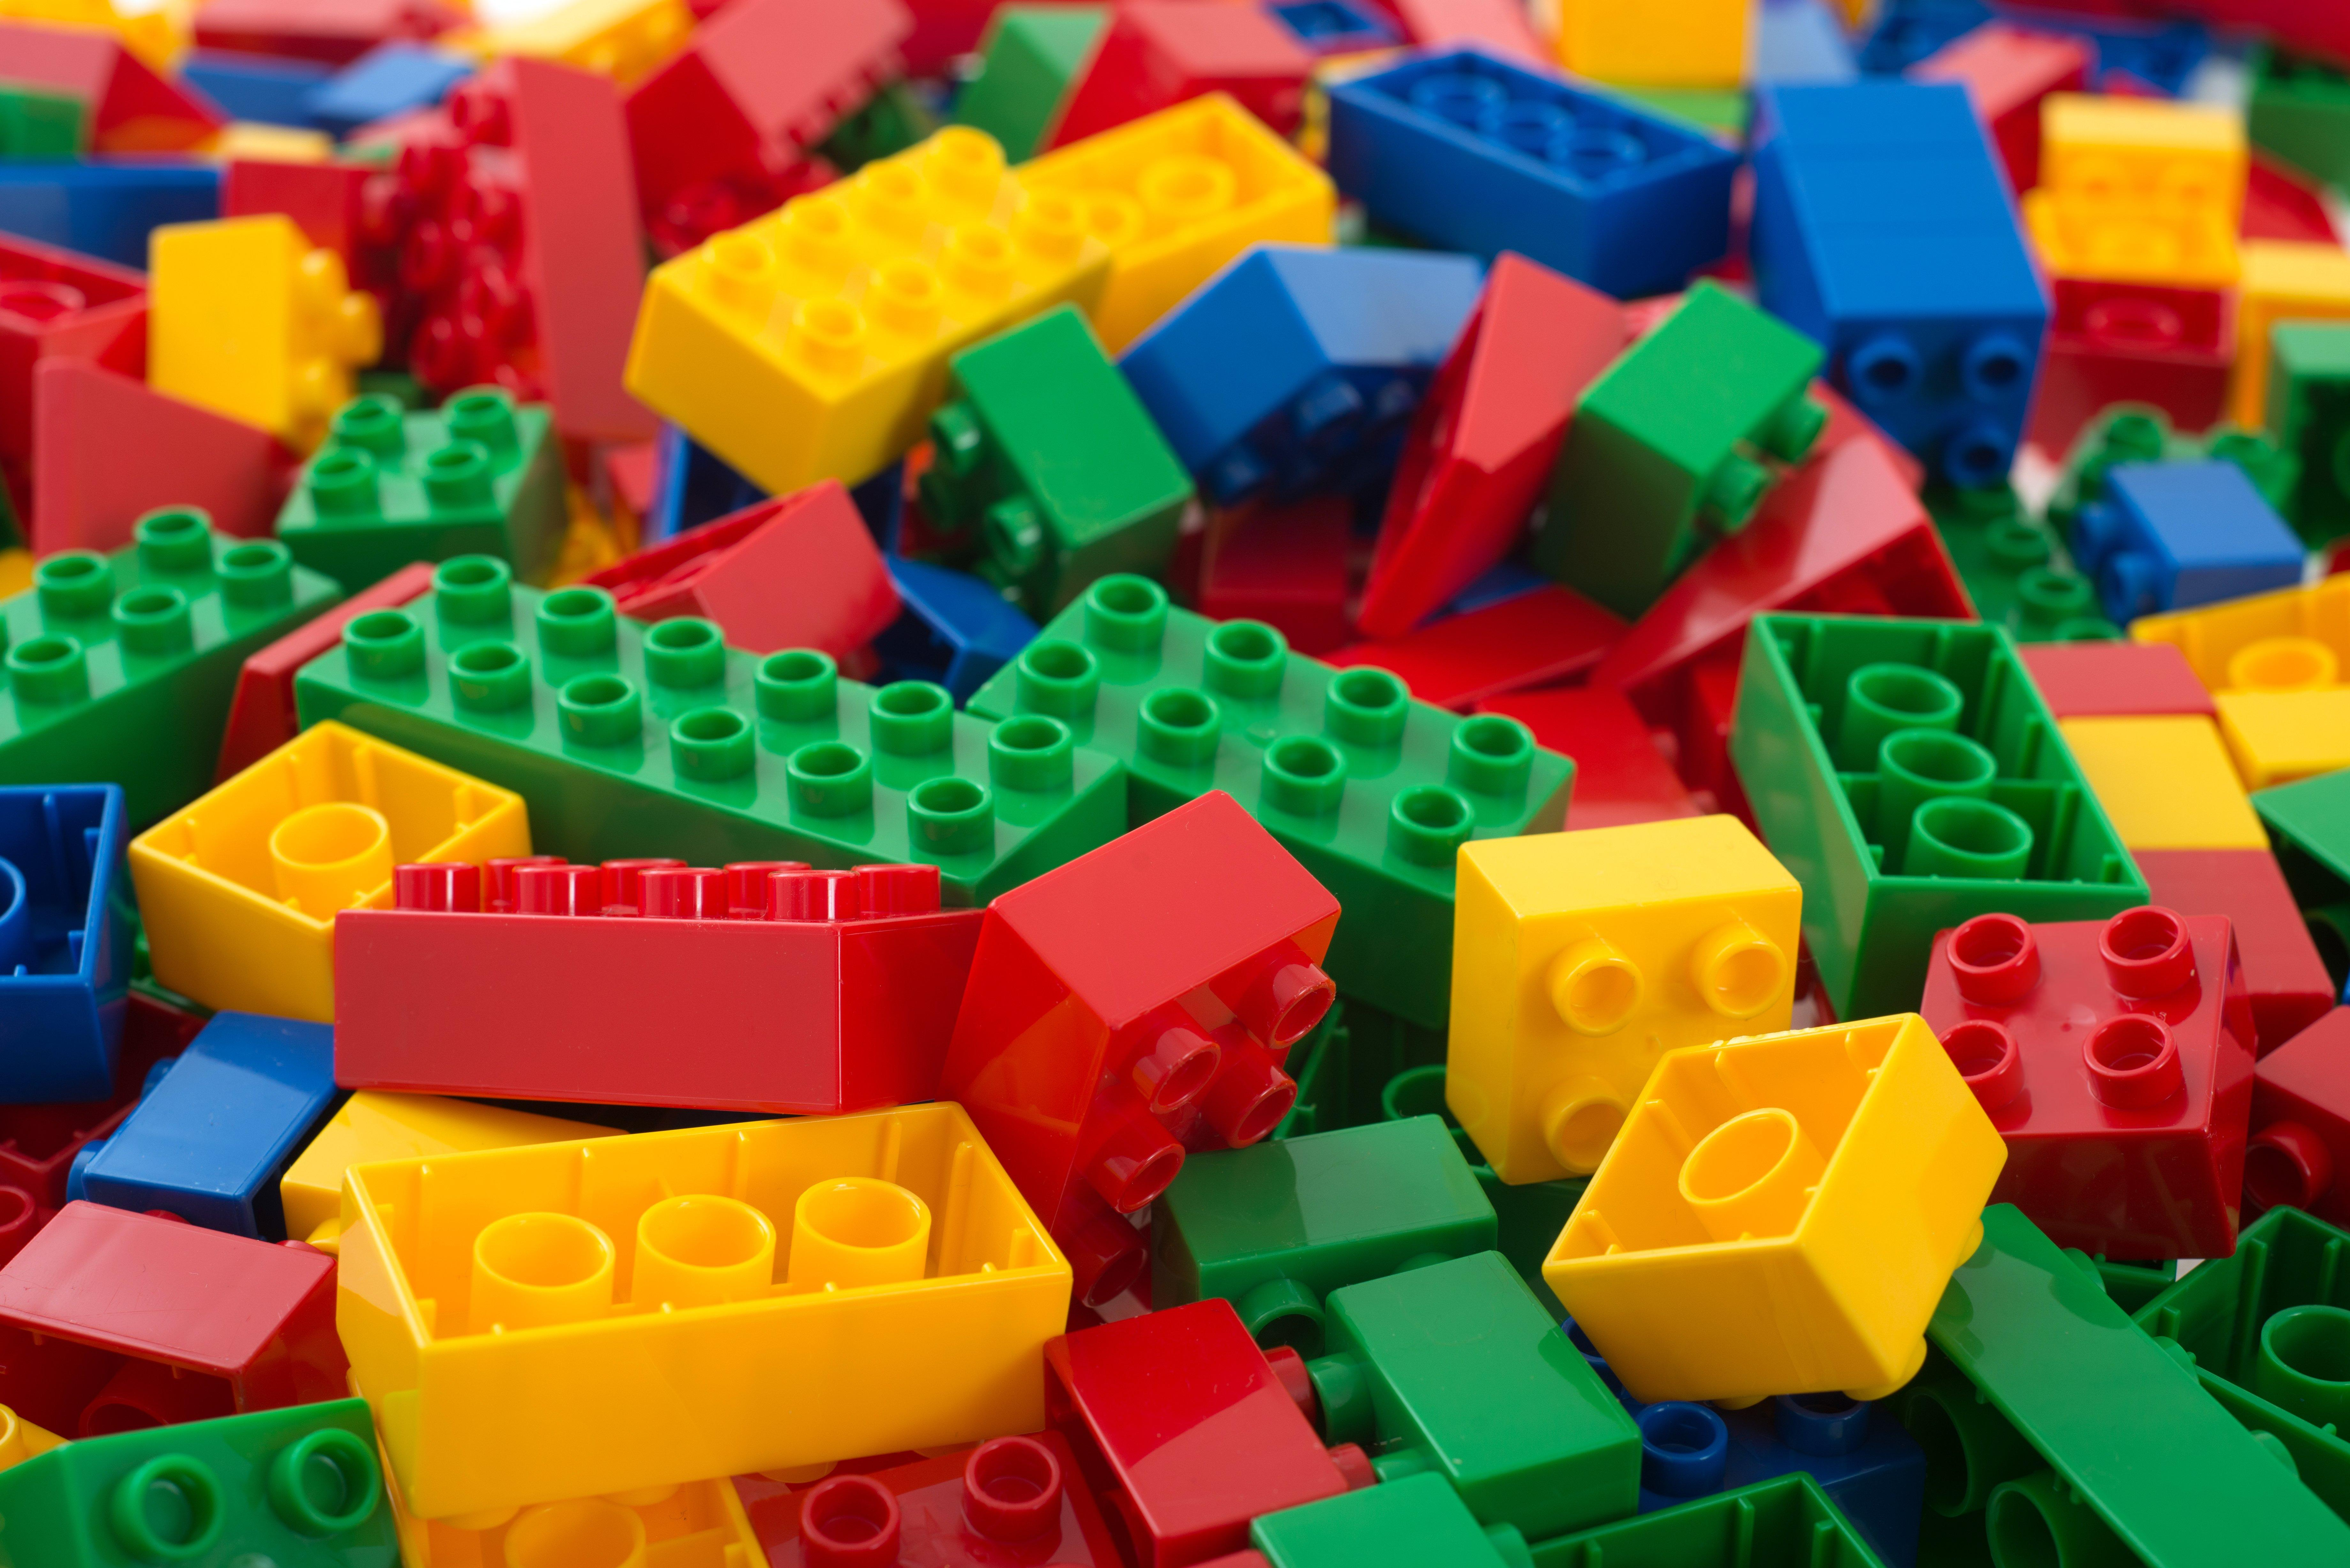 Dream Job Alert: LEGO Is Hiring Someone To Play With LEGOs All Day